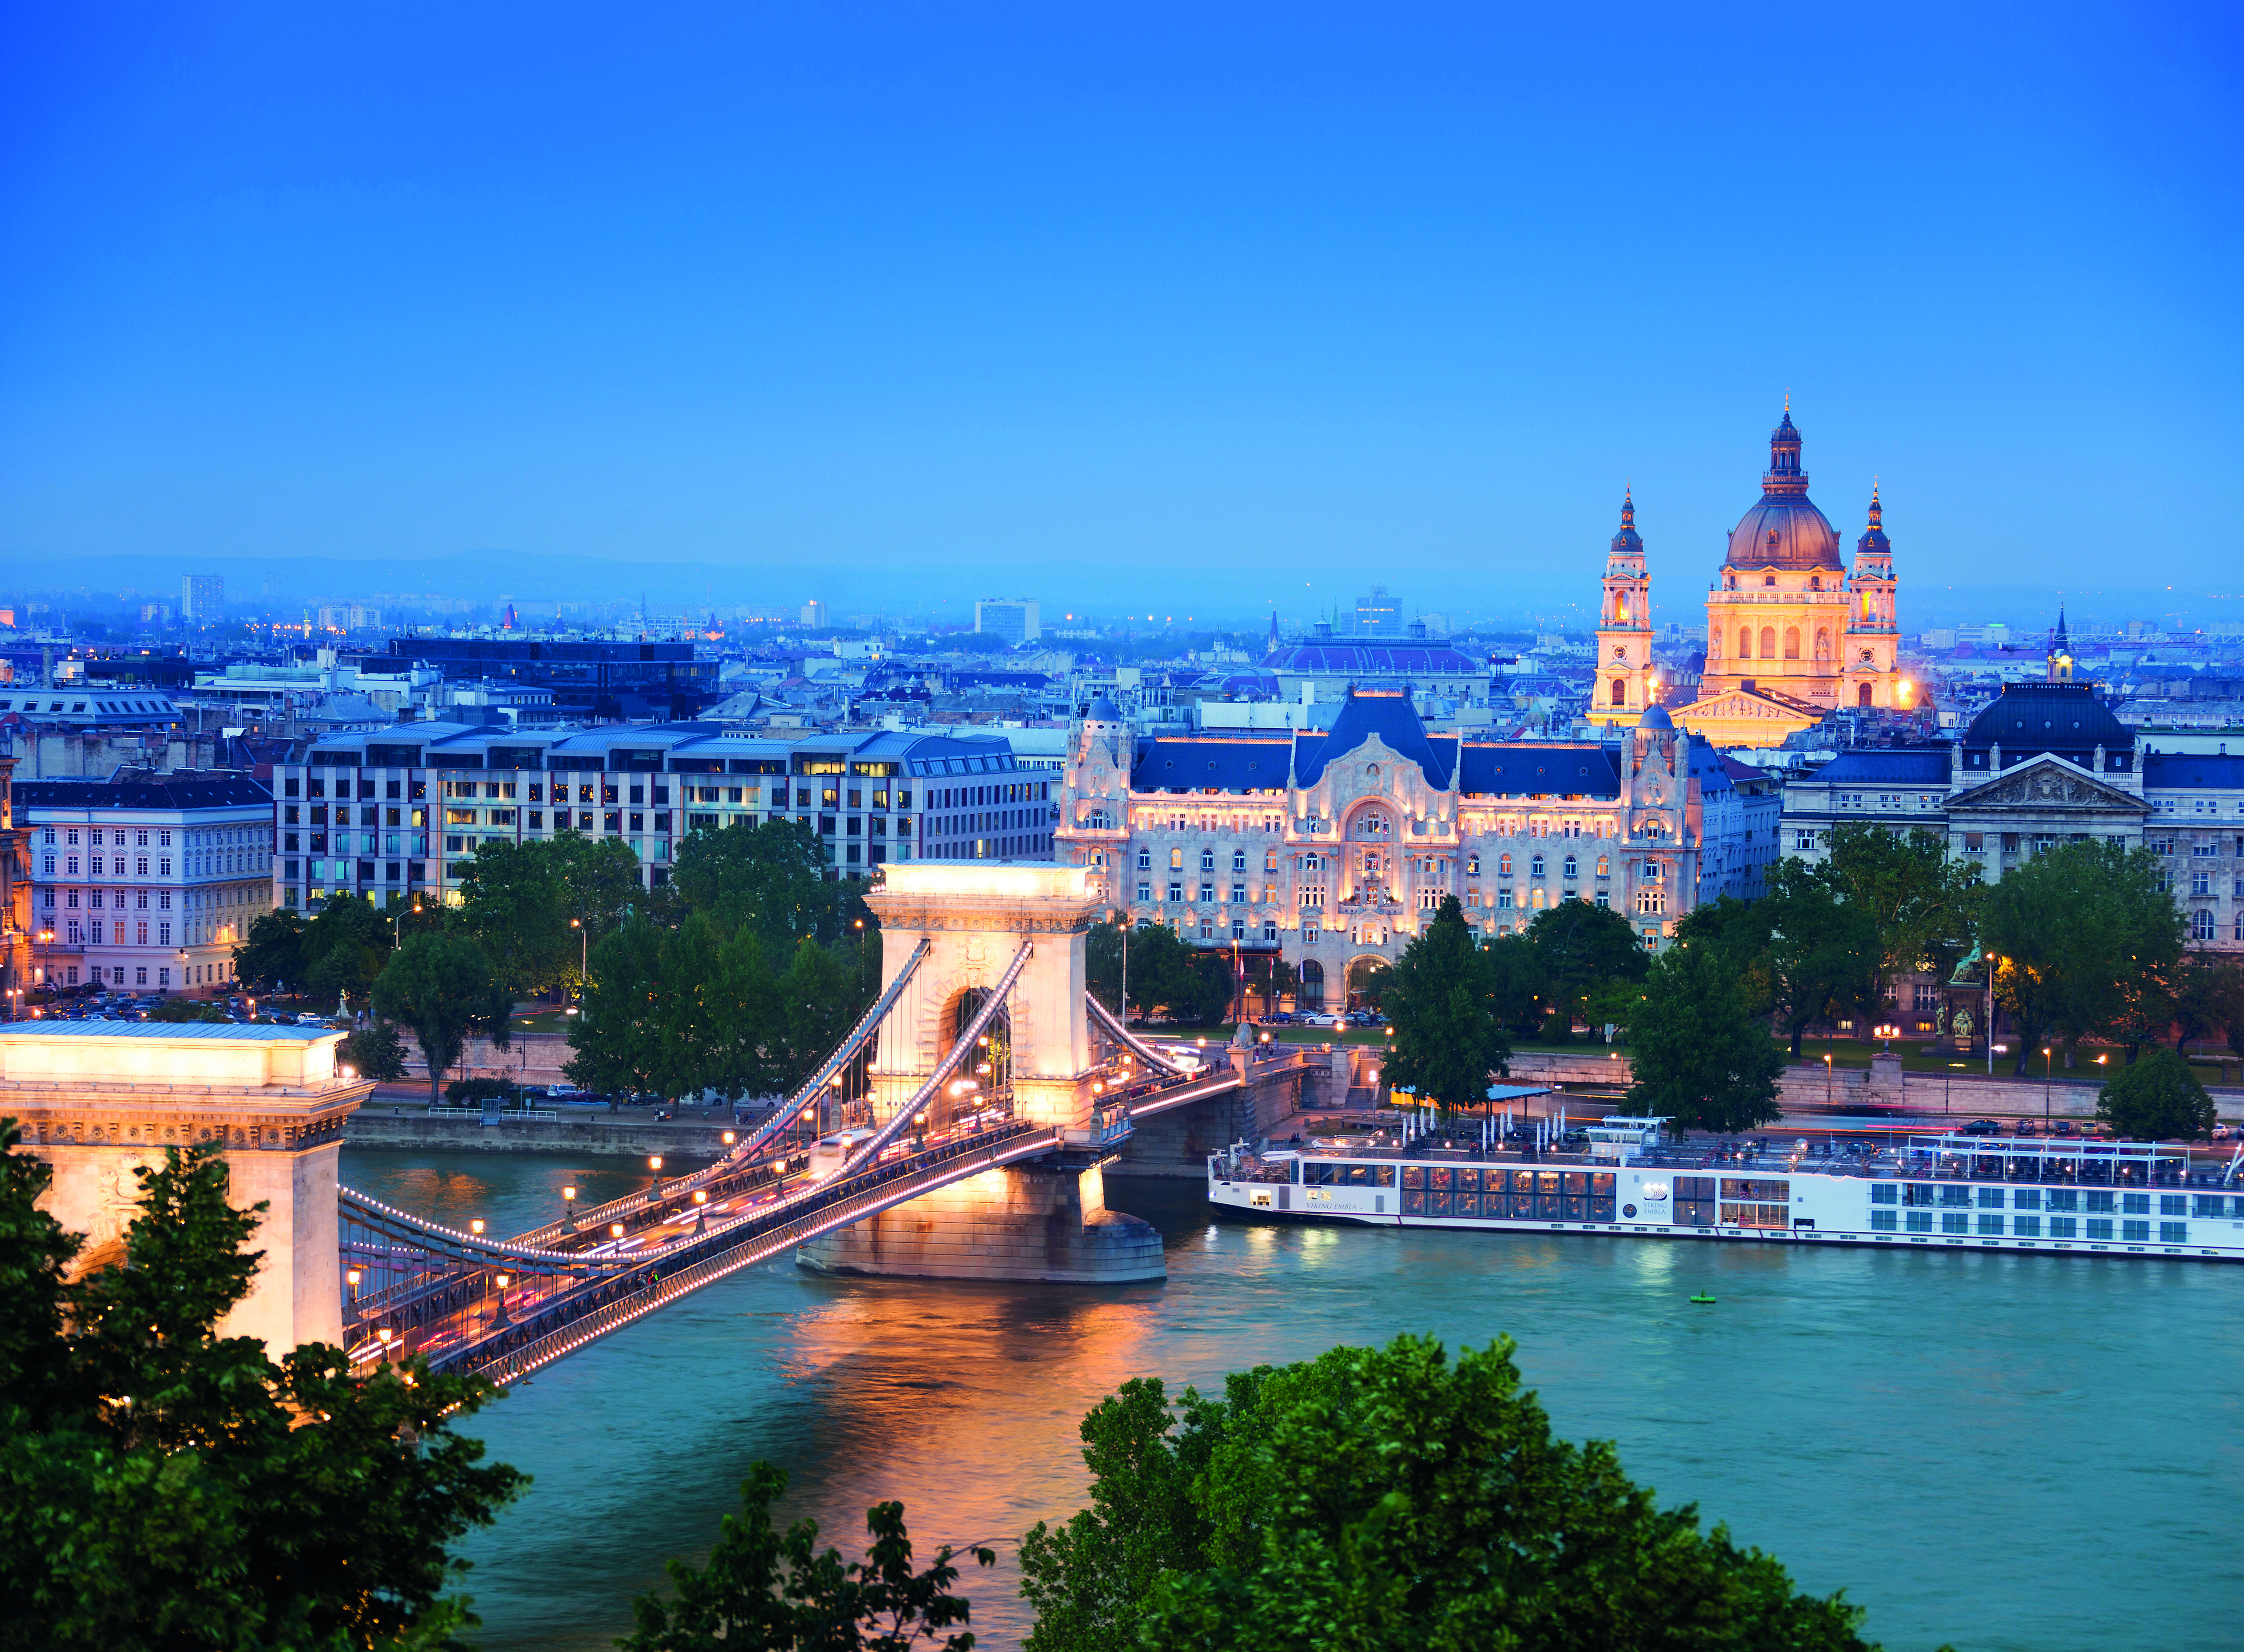 Win A Romantic Danube River Cruise From Viking Cruises Cruise - Viking danube river cruise